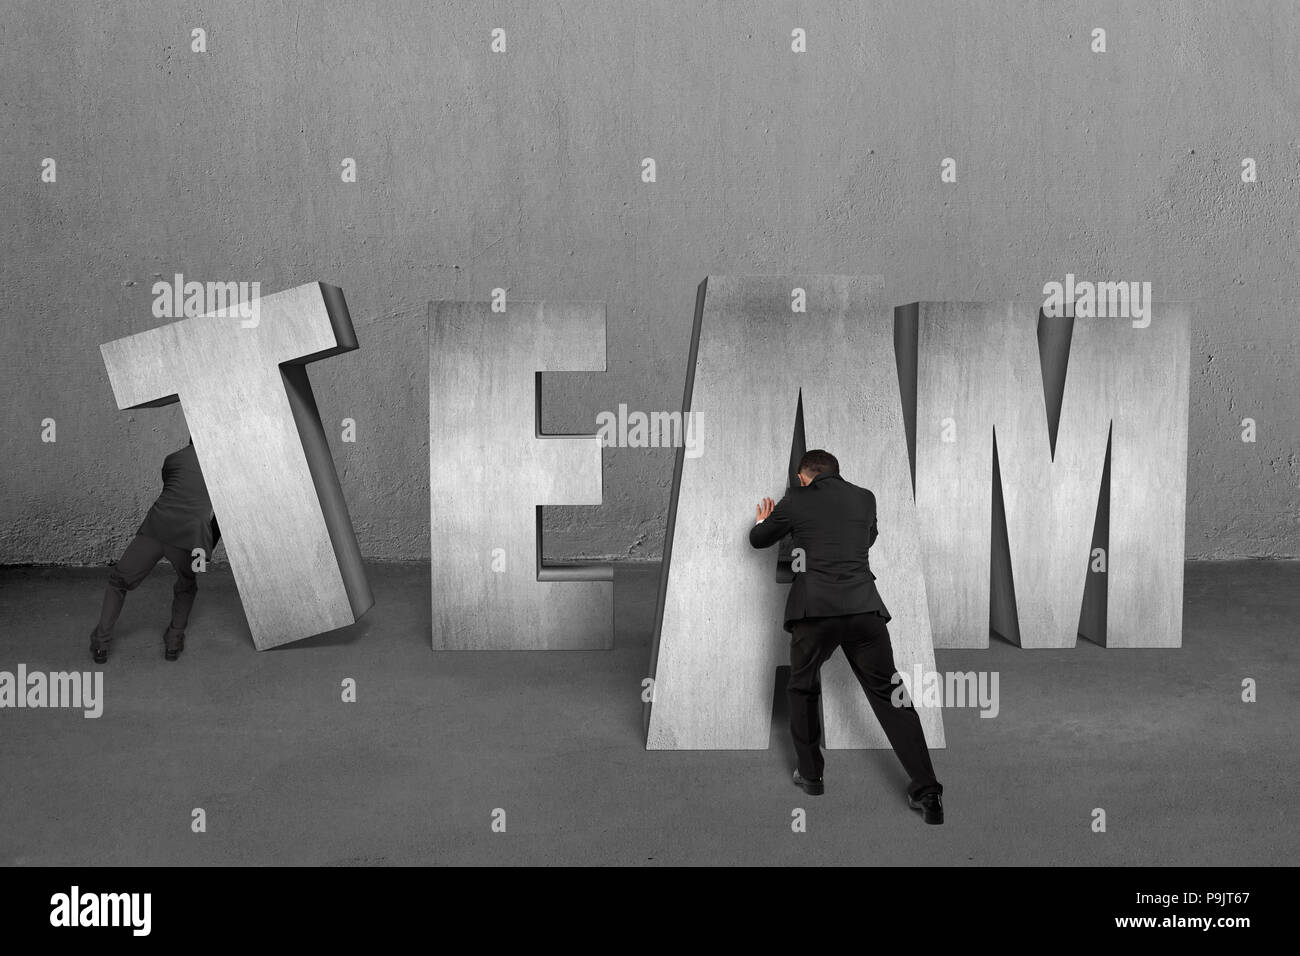 Two men moving TEAM concrete words together - Stock Image